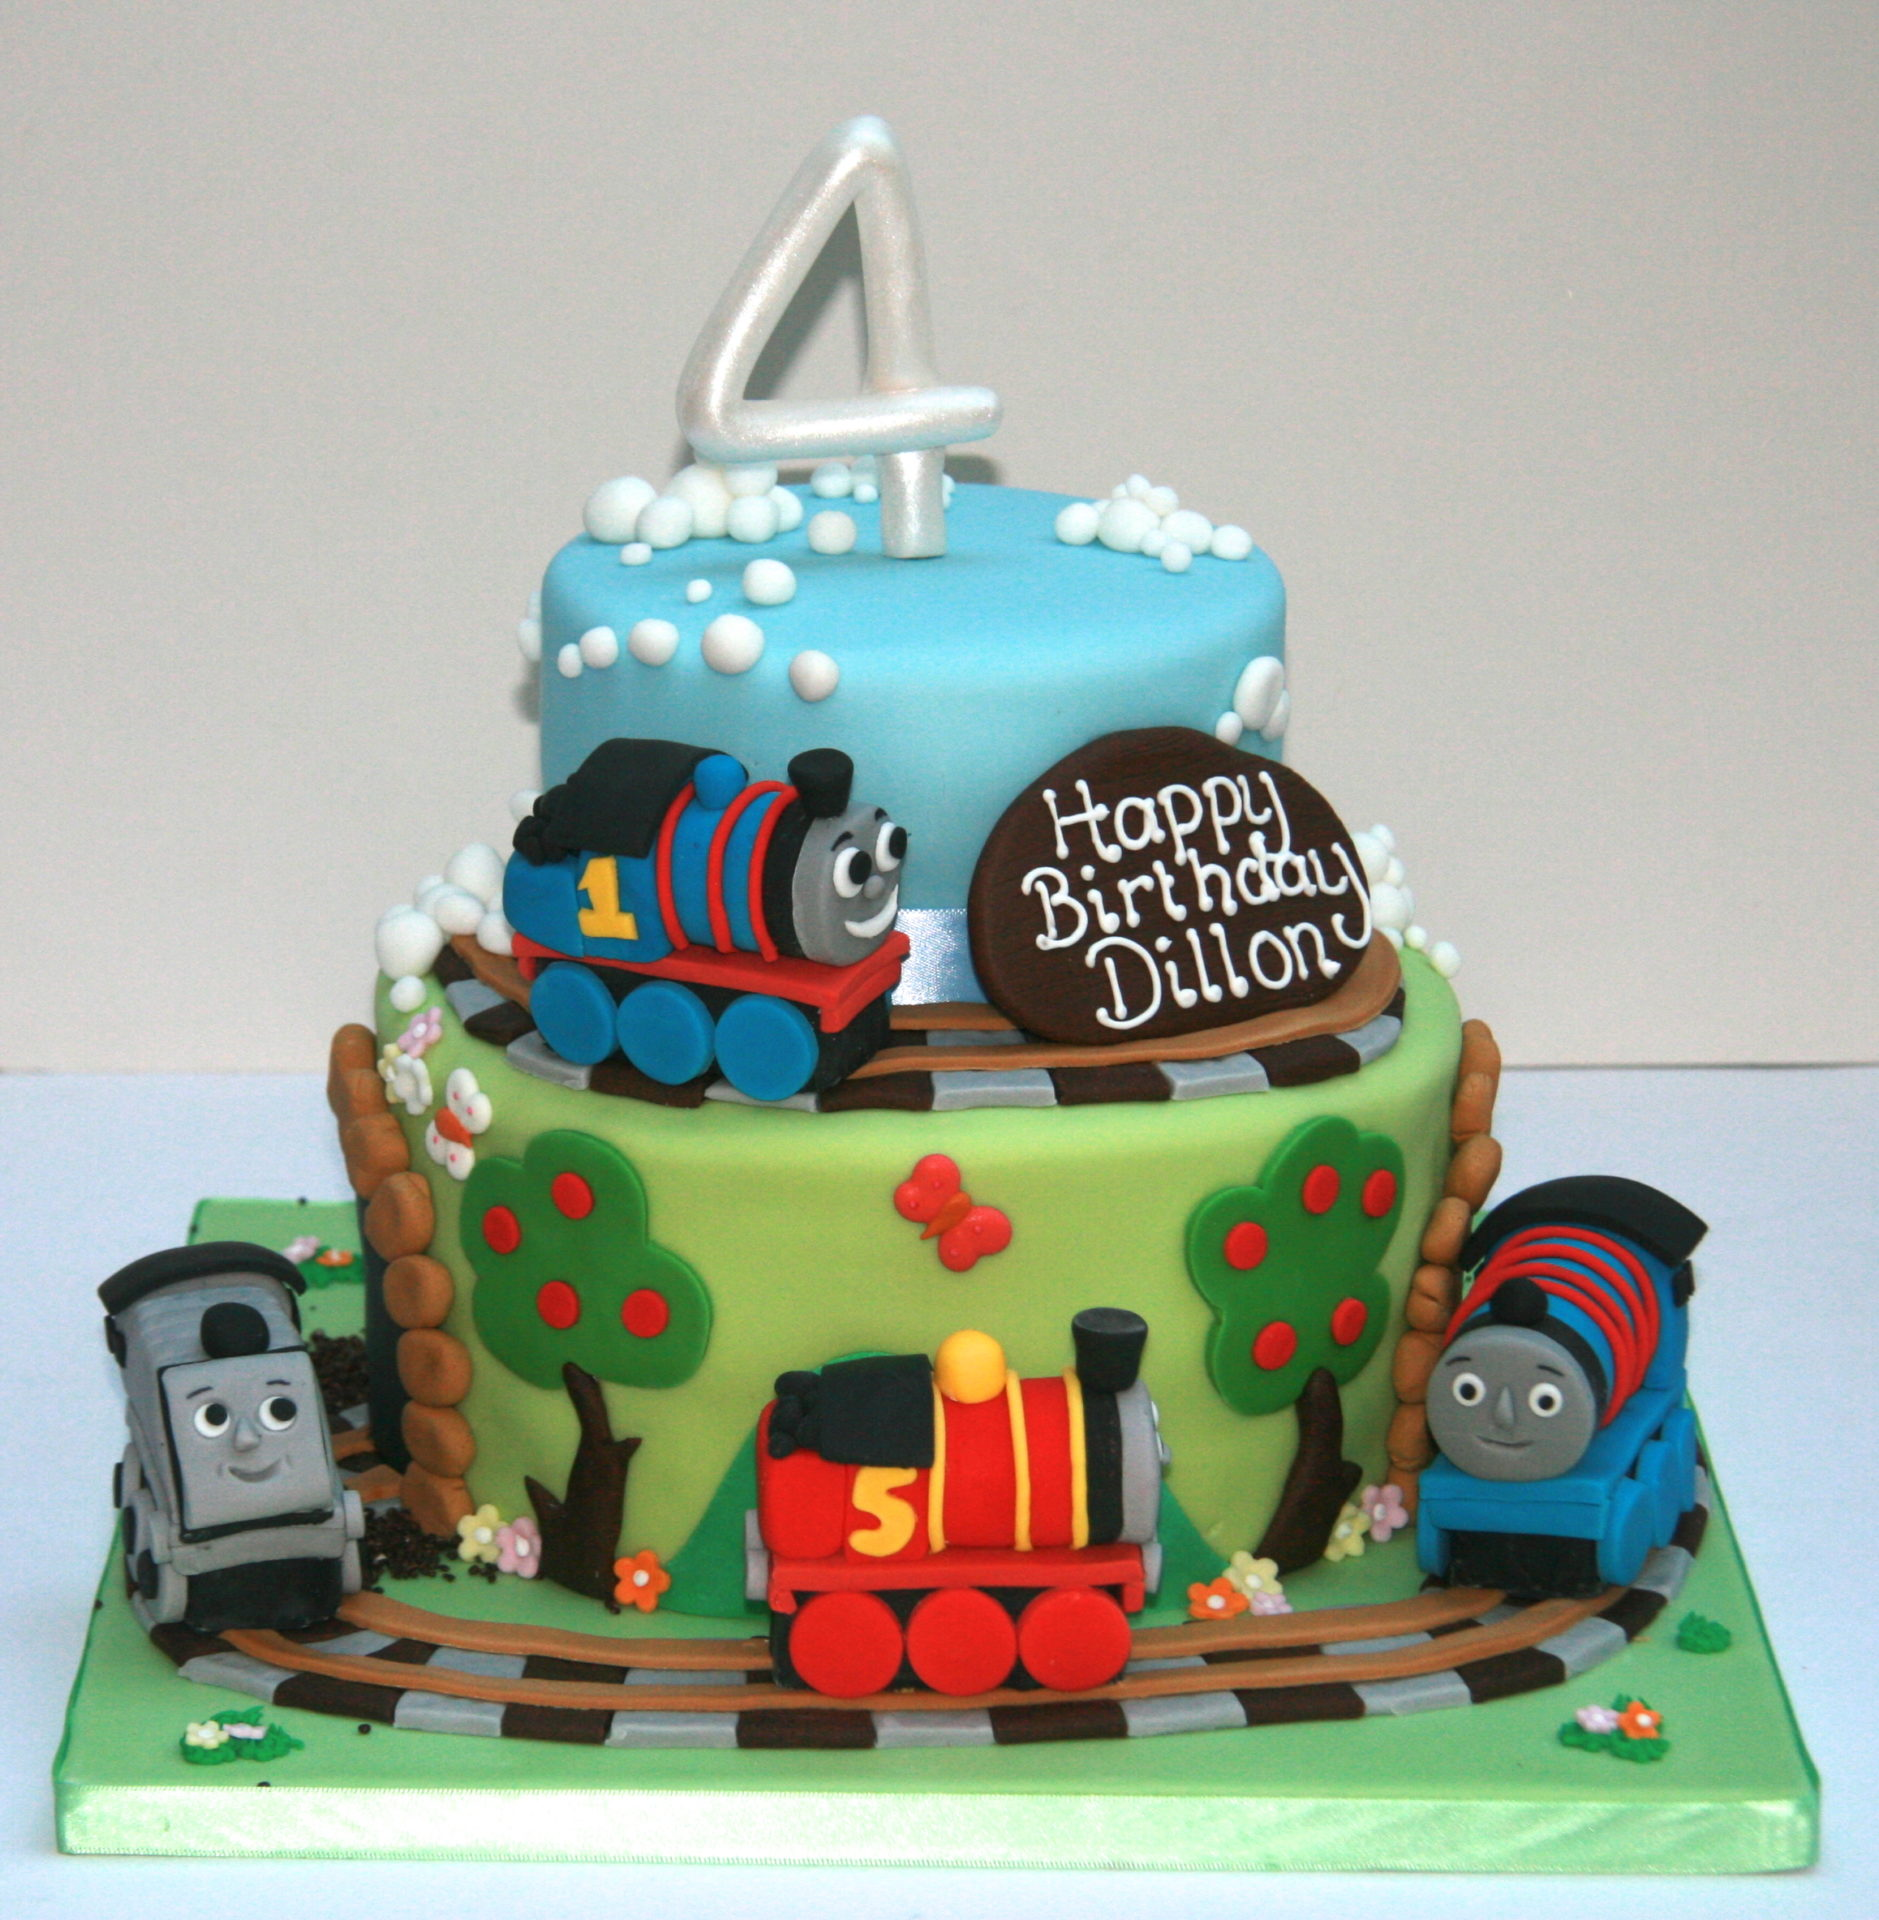 Groovy Thomas Birthday Cake Etoile Bakery Personalised Birthday Cards Sponlily Jamesorg